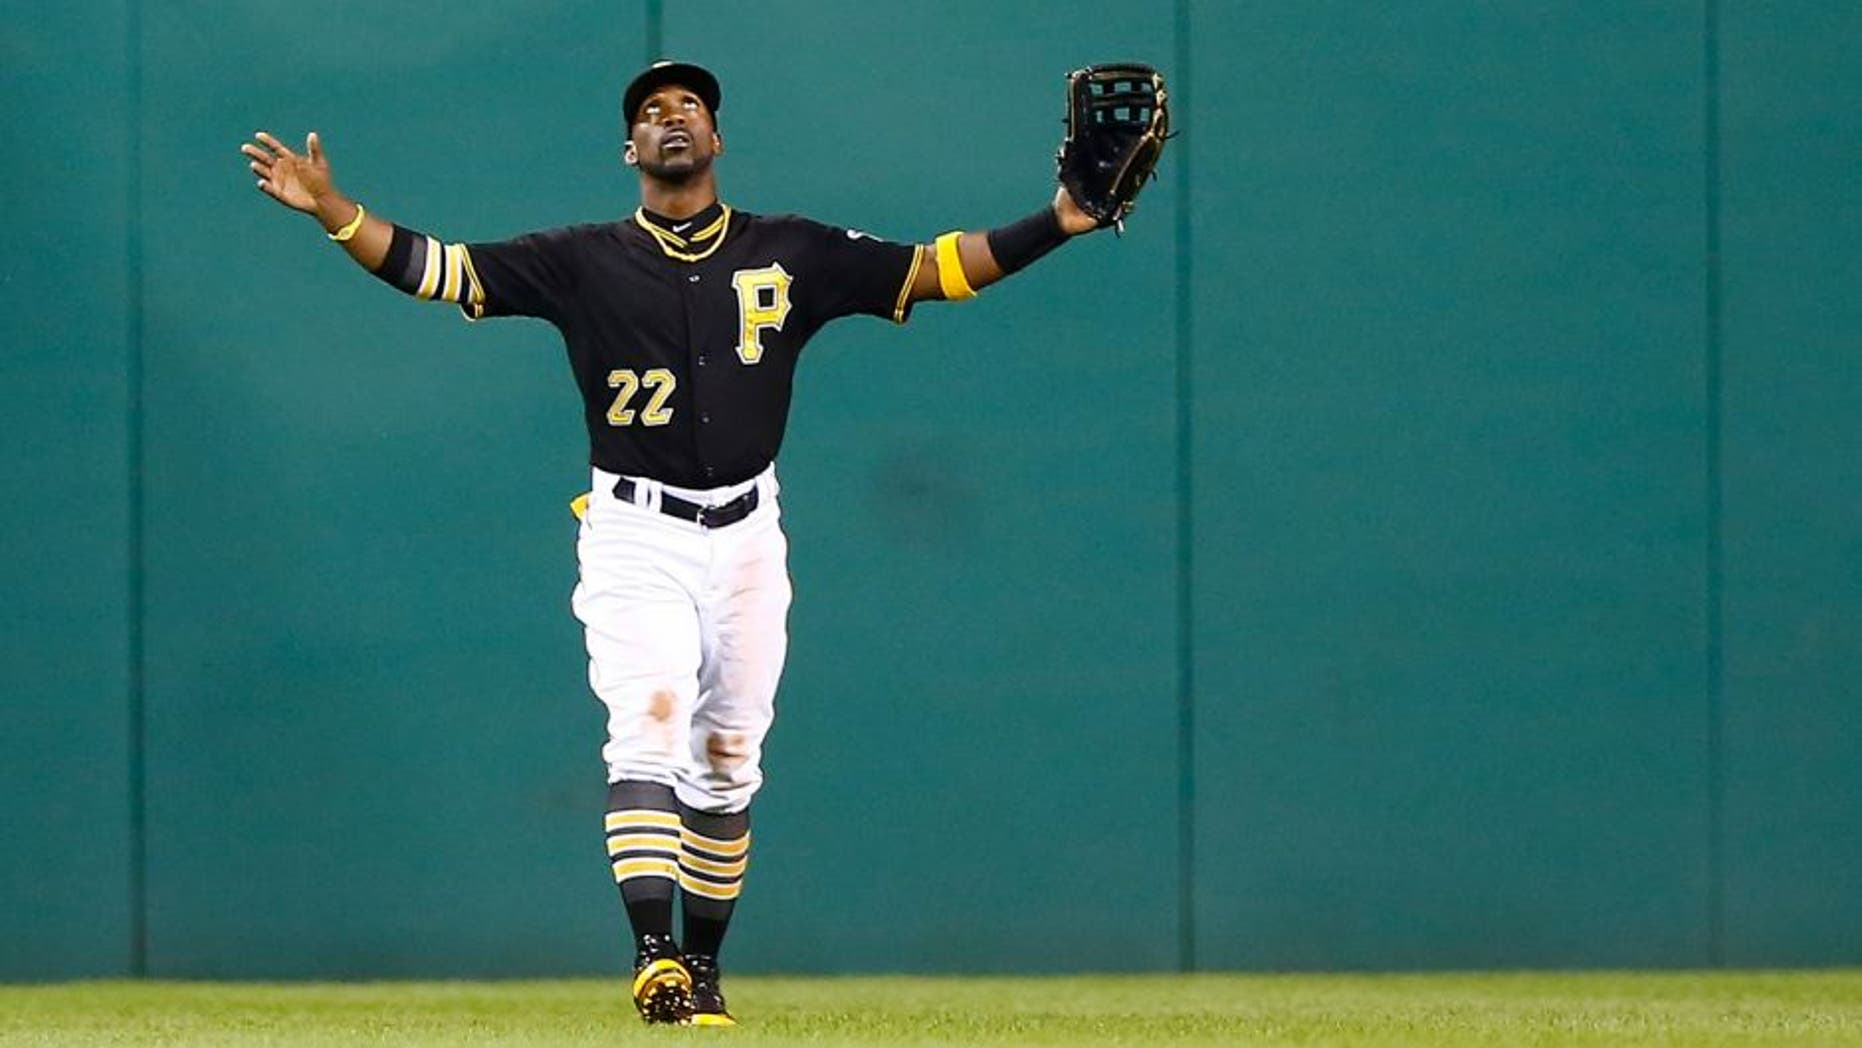 PITTSBURGH, PA - SEPTEMBER 11: Andrew McCutchen #22 of the Pittsburgh Pirates celebrates their 6-3 win against the Milwaukee Brewers during the game at PNC Park on September 11, 2015 in Pittsburgh, Pennsylvania. (Photo by Jared Wickerham/Getty Images)